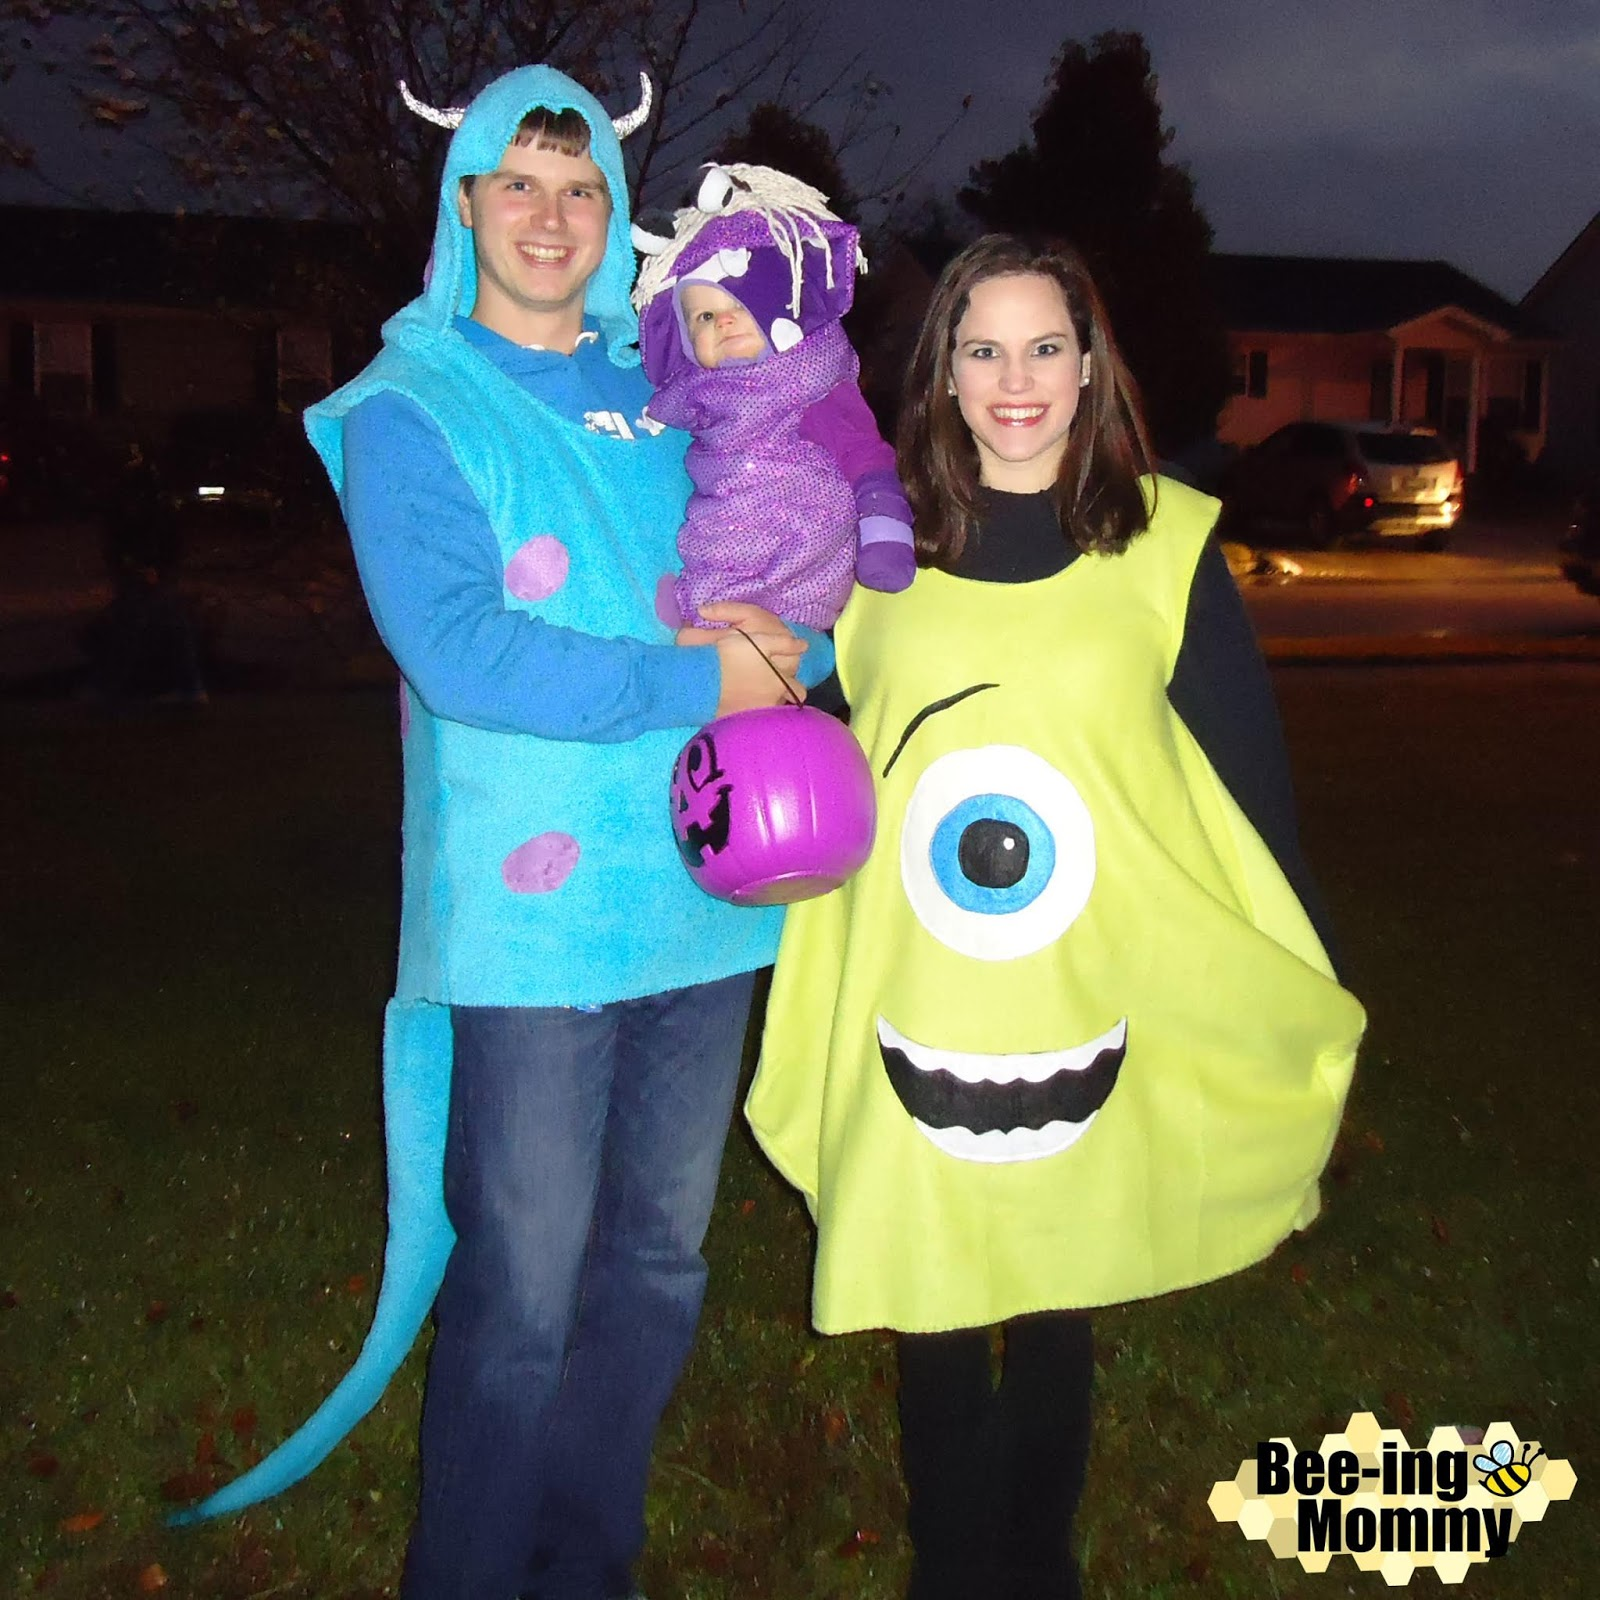 Monsteru0027s Inc family costume costume tutorial Monsteru0027s Inc costume tutorial Mike Sully  sc 1 st  Bee-ing Mommy & Bee-ing Mommy Blog: Monsteru0027s Inc. Family Costume: Mike Sully u0026 Boo